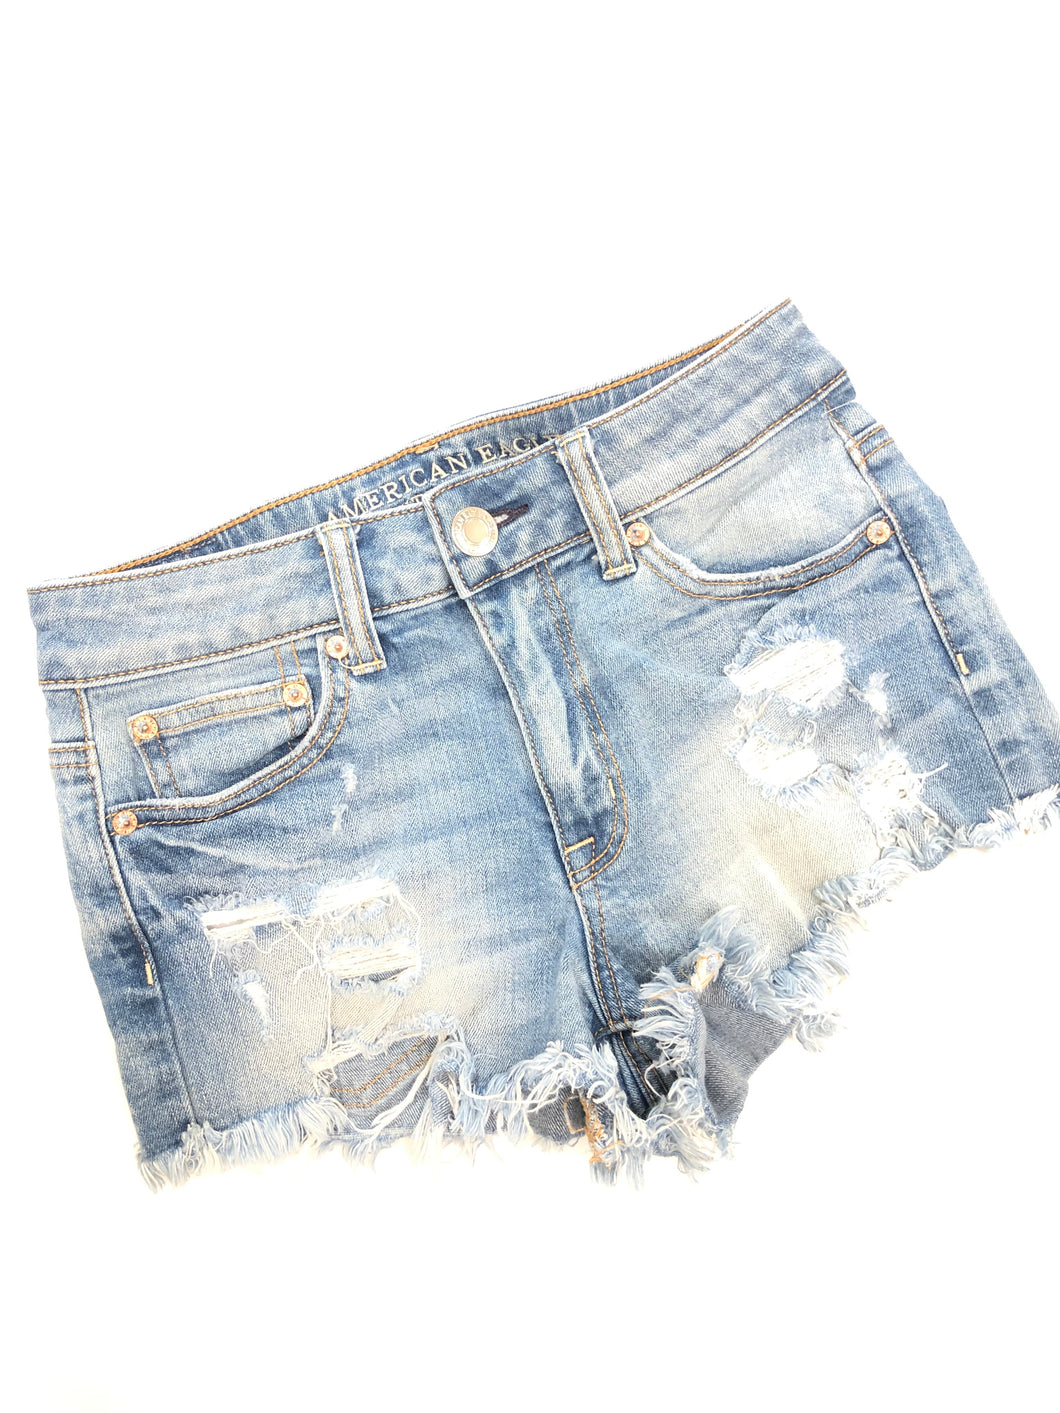 American Eagle Shorts Women's 0